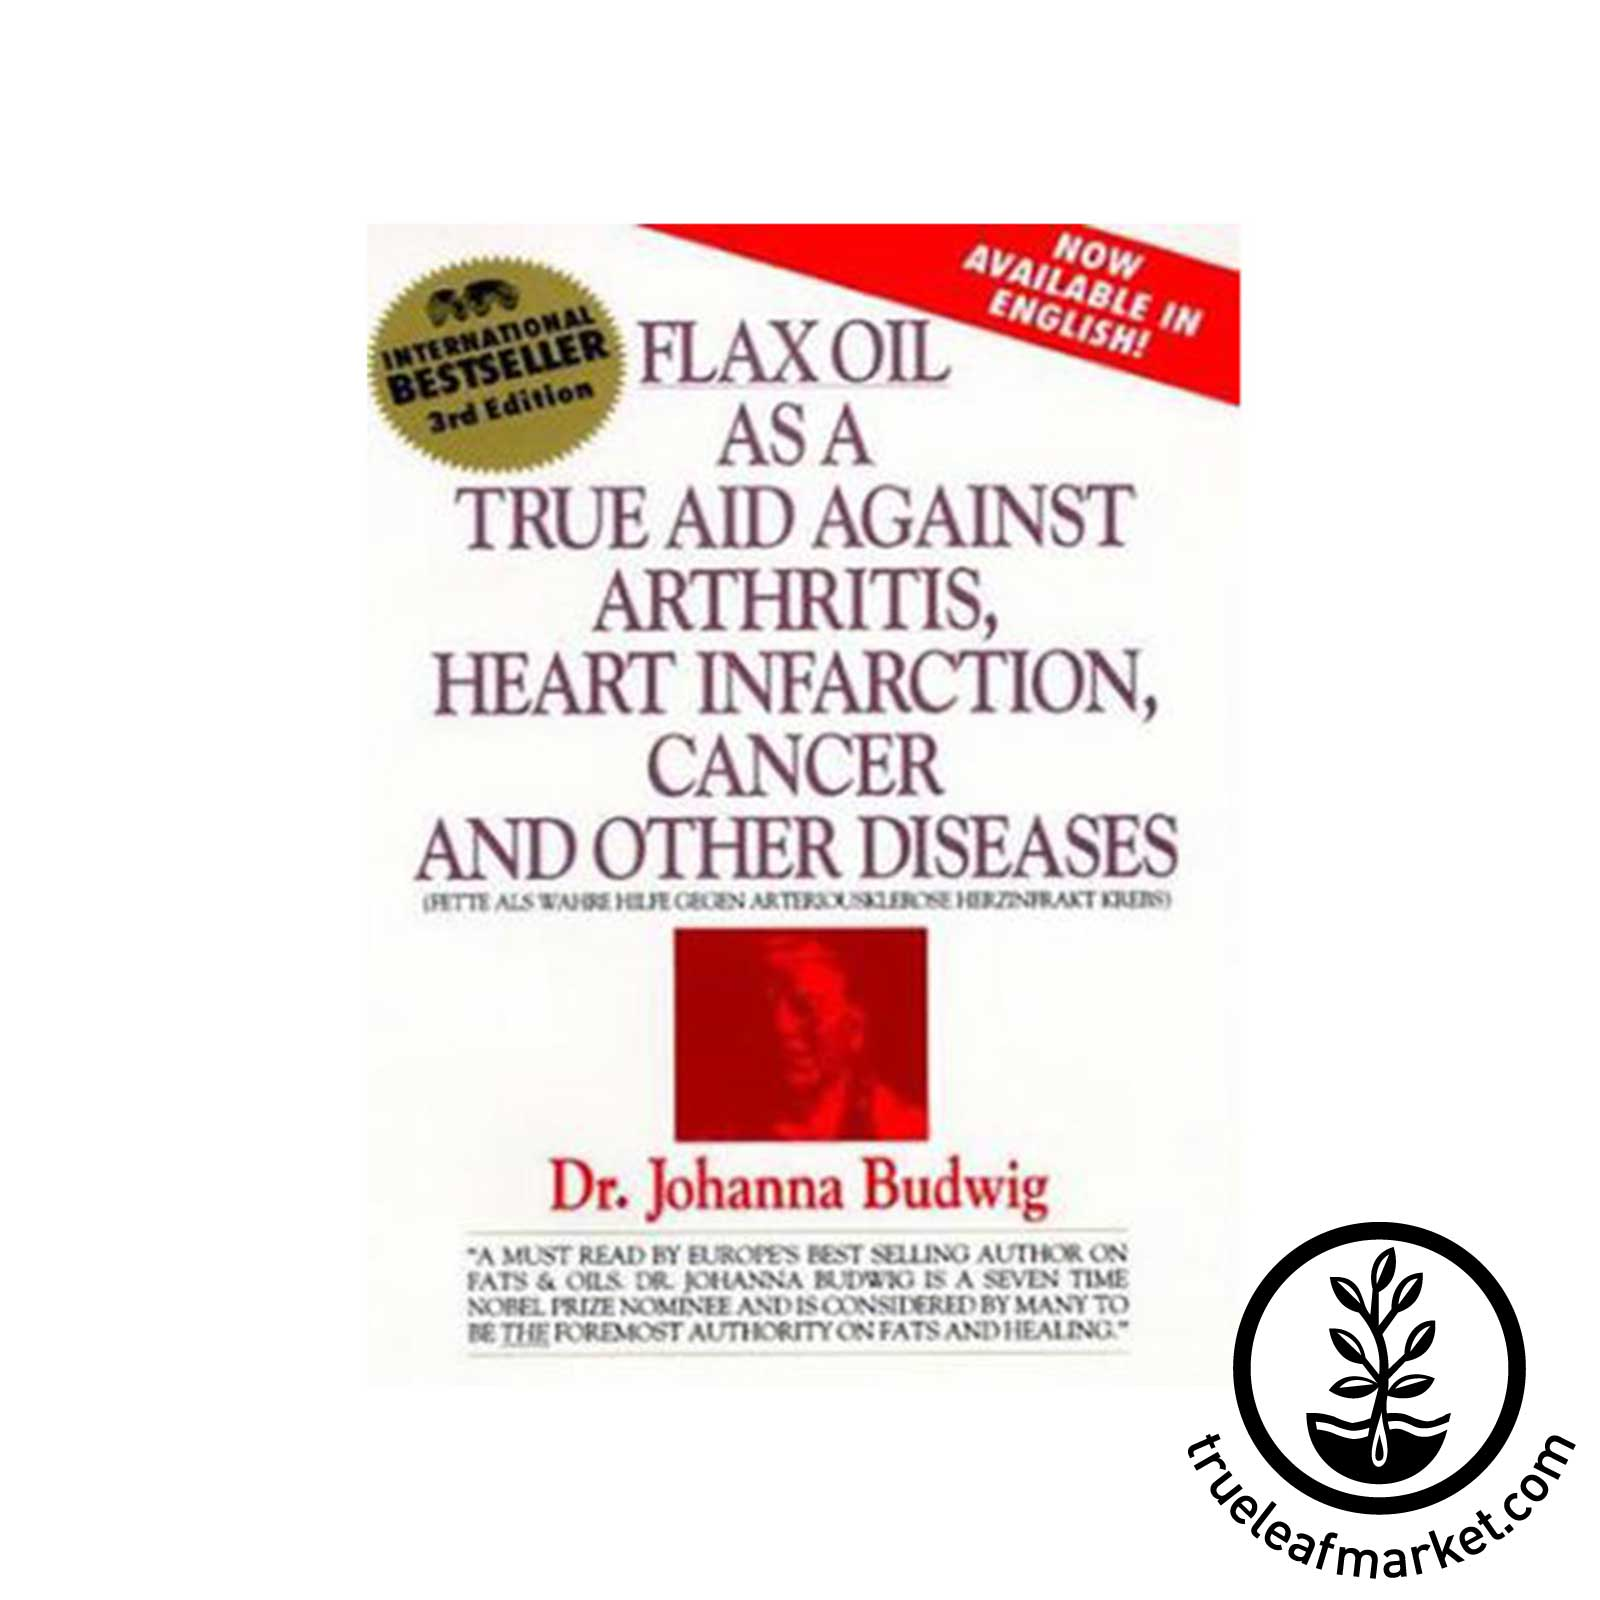 Flax Oil as a True Aid Against Arthritis Heart Infarction Cancer Book Flax Oil as a True Aid Against Arthritis, Heart Infarction, Cancer